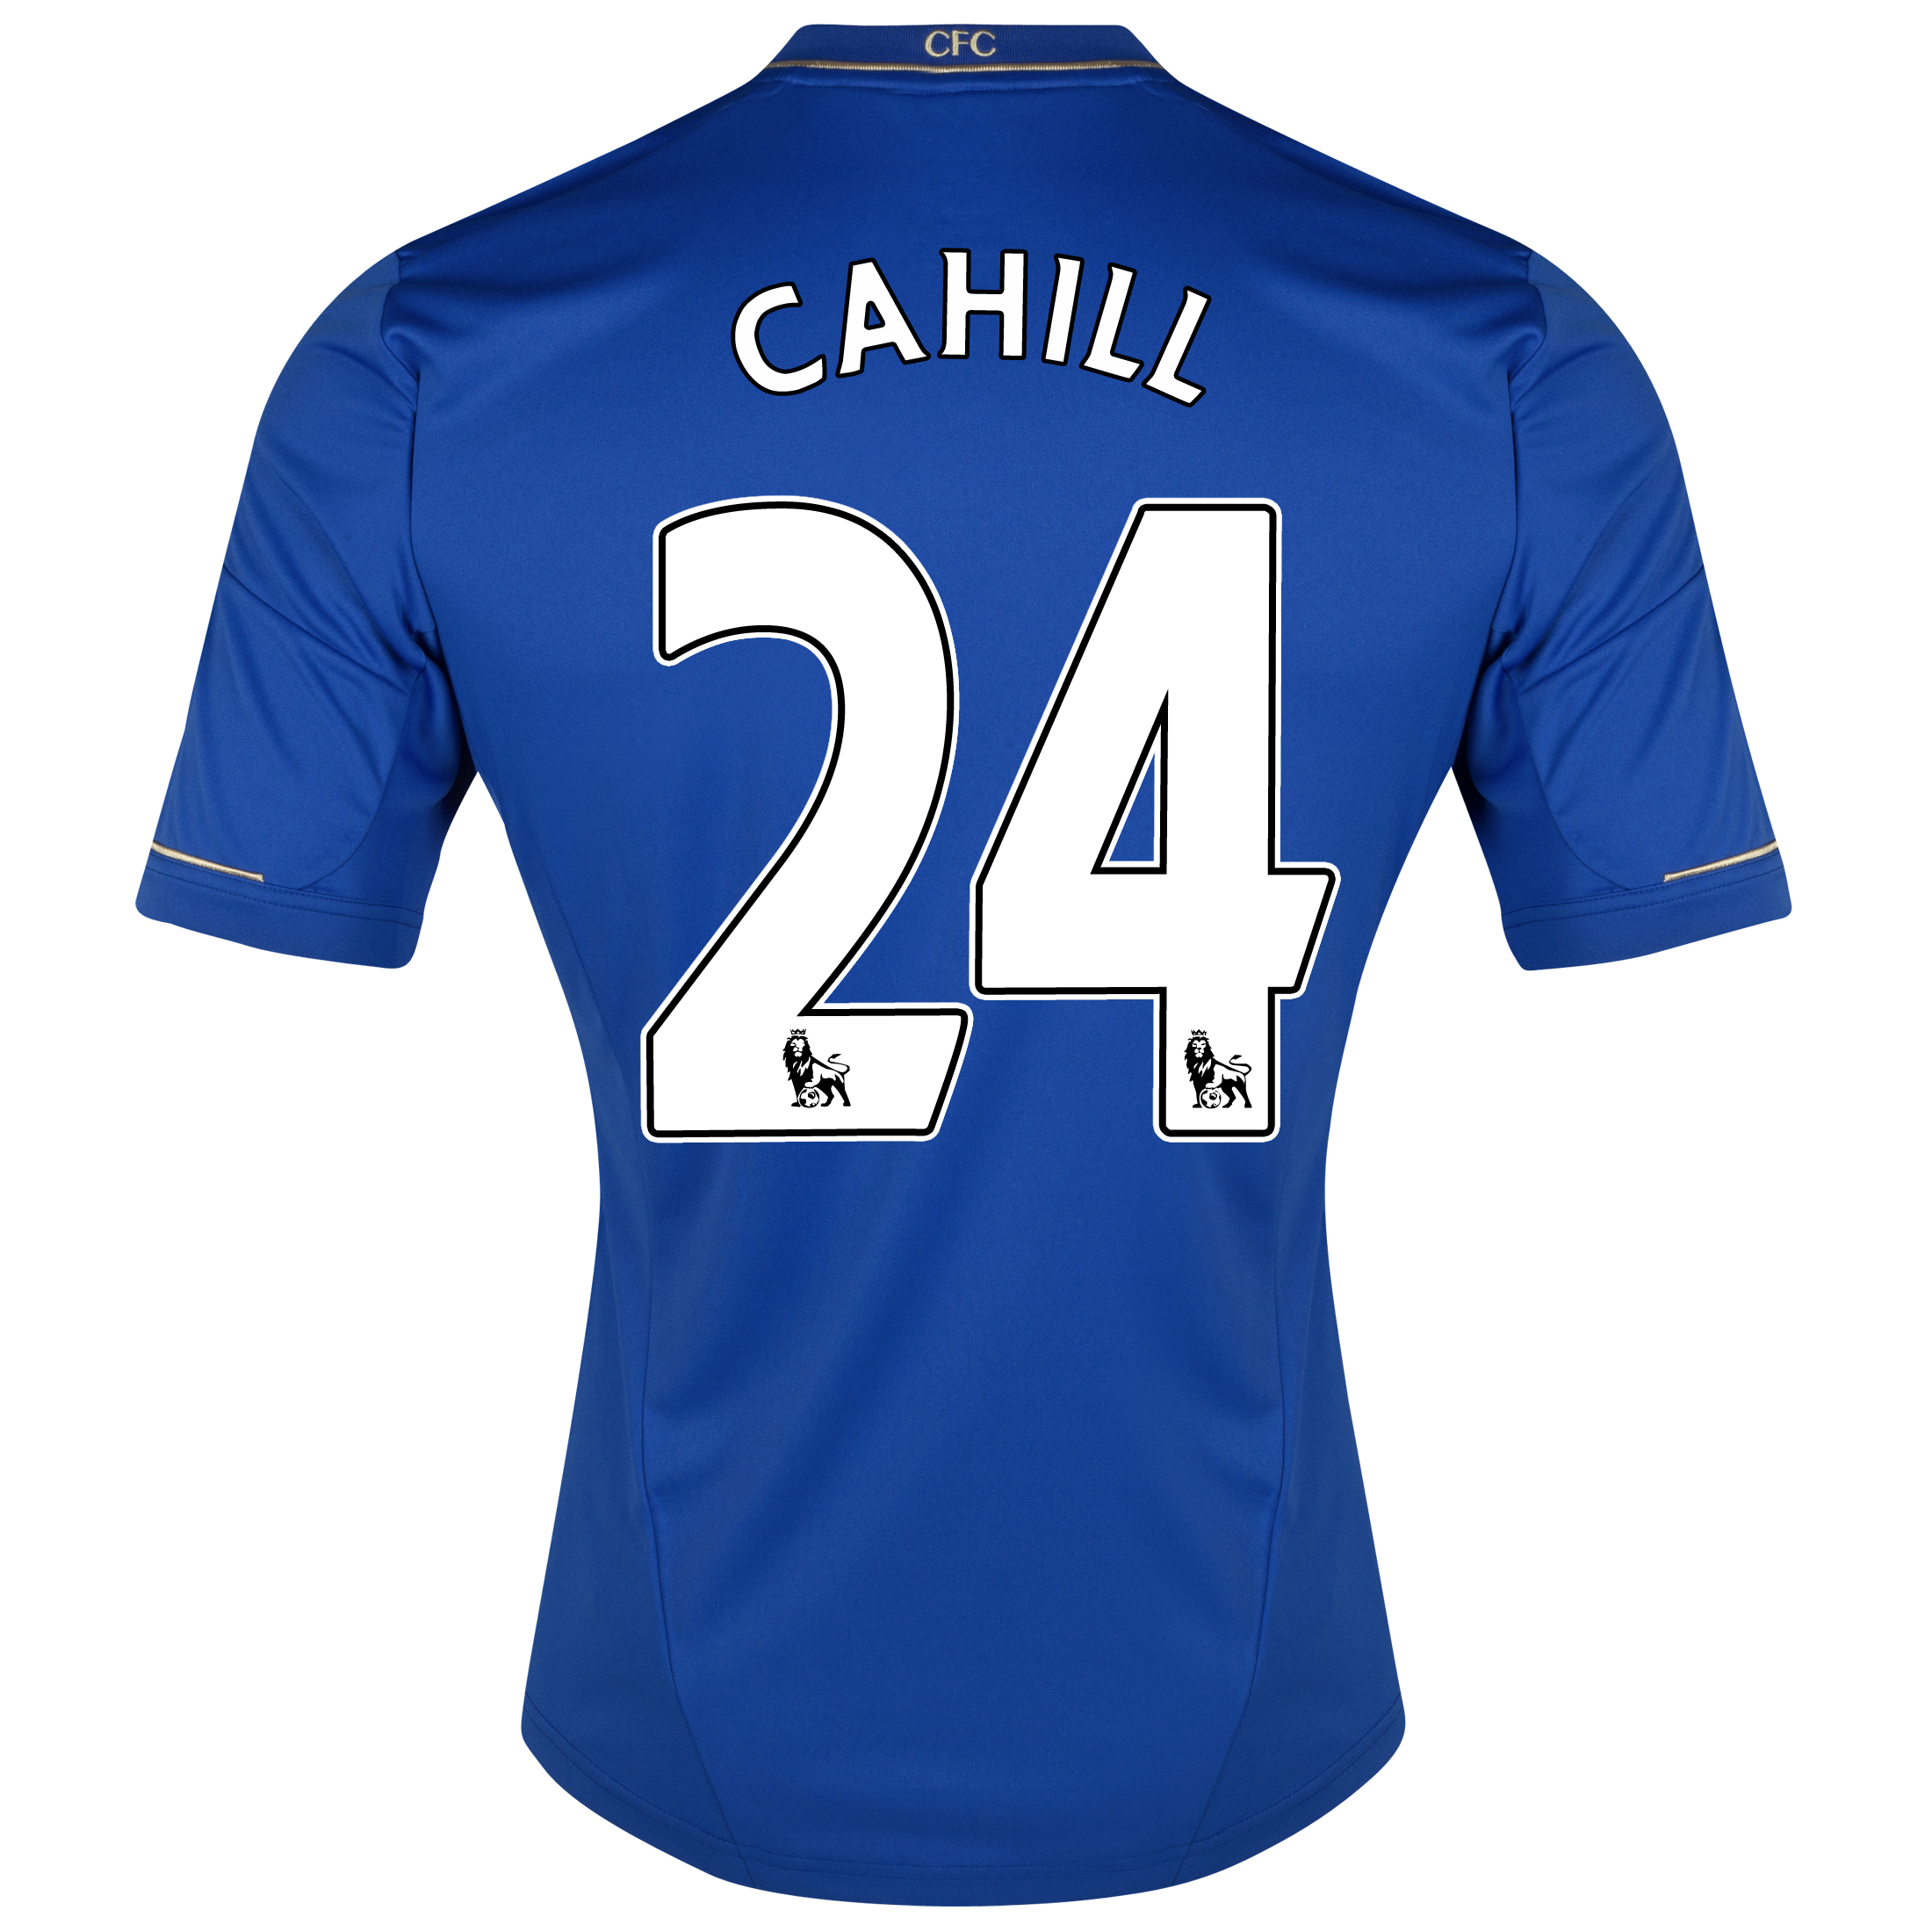 Chelsea Home Shirt 2012/13 - Youths with Cahill 24 printing